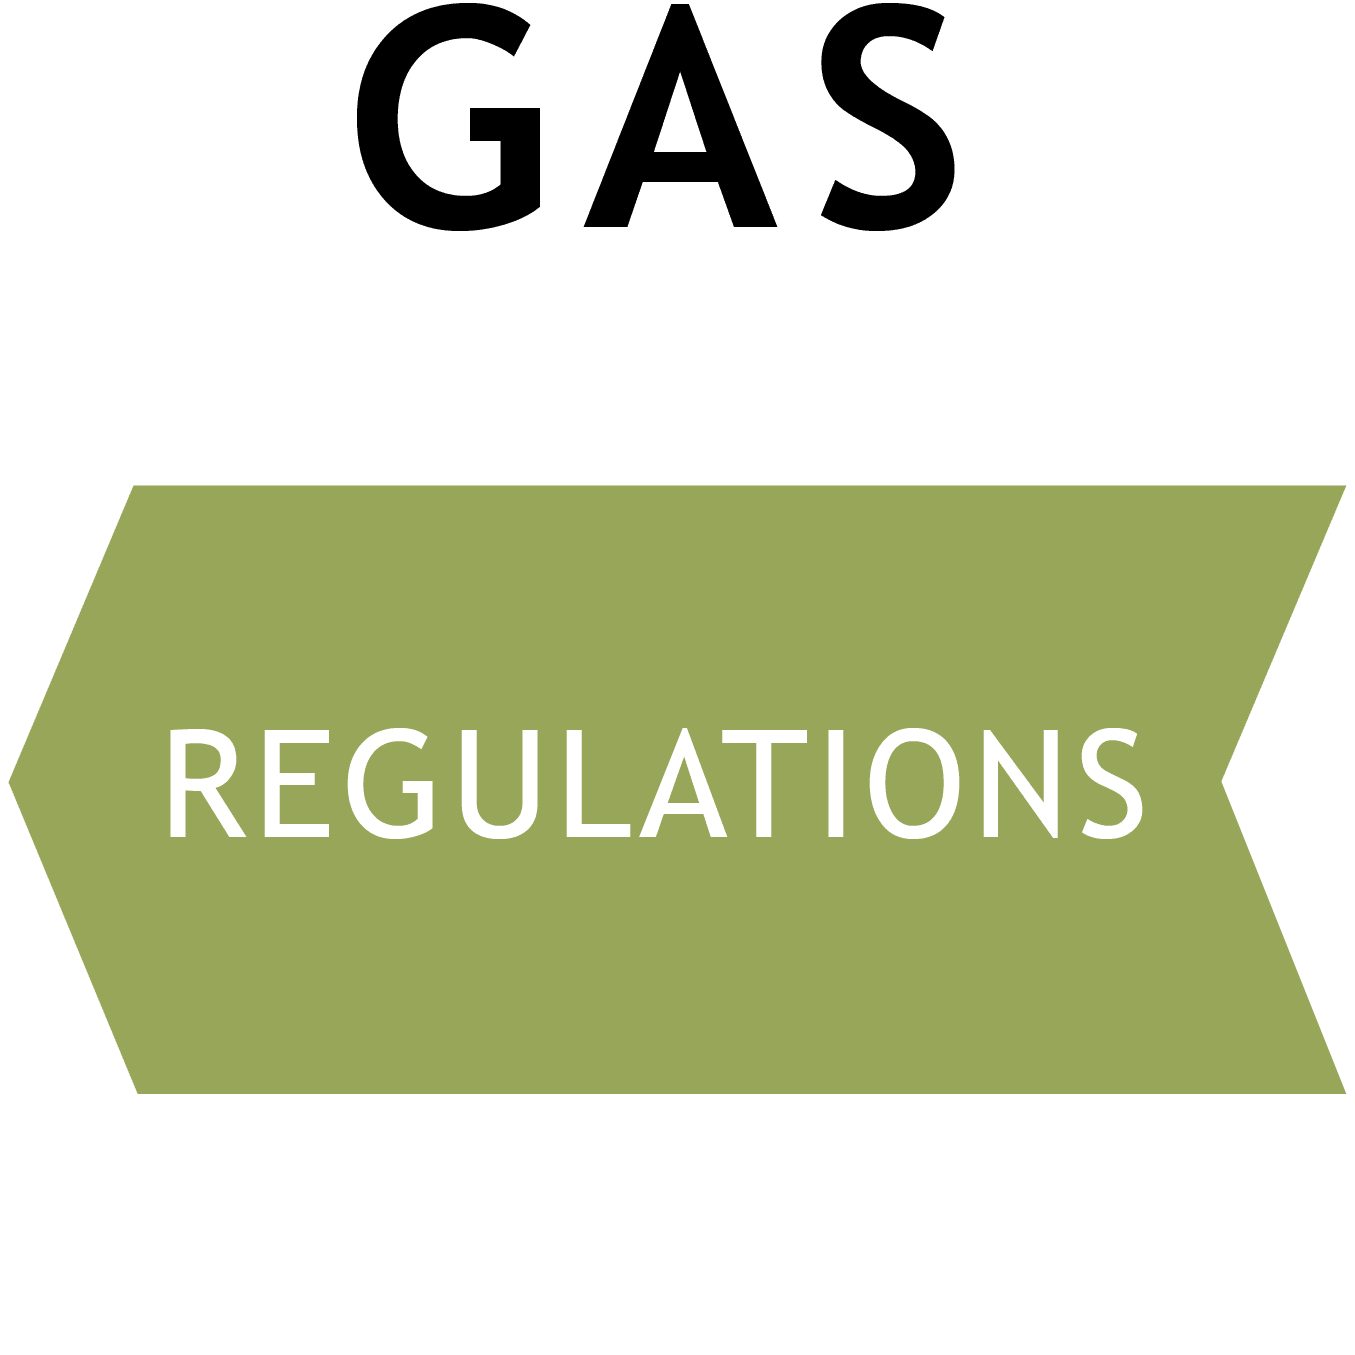 oil and gas regulation buttons_regulations